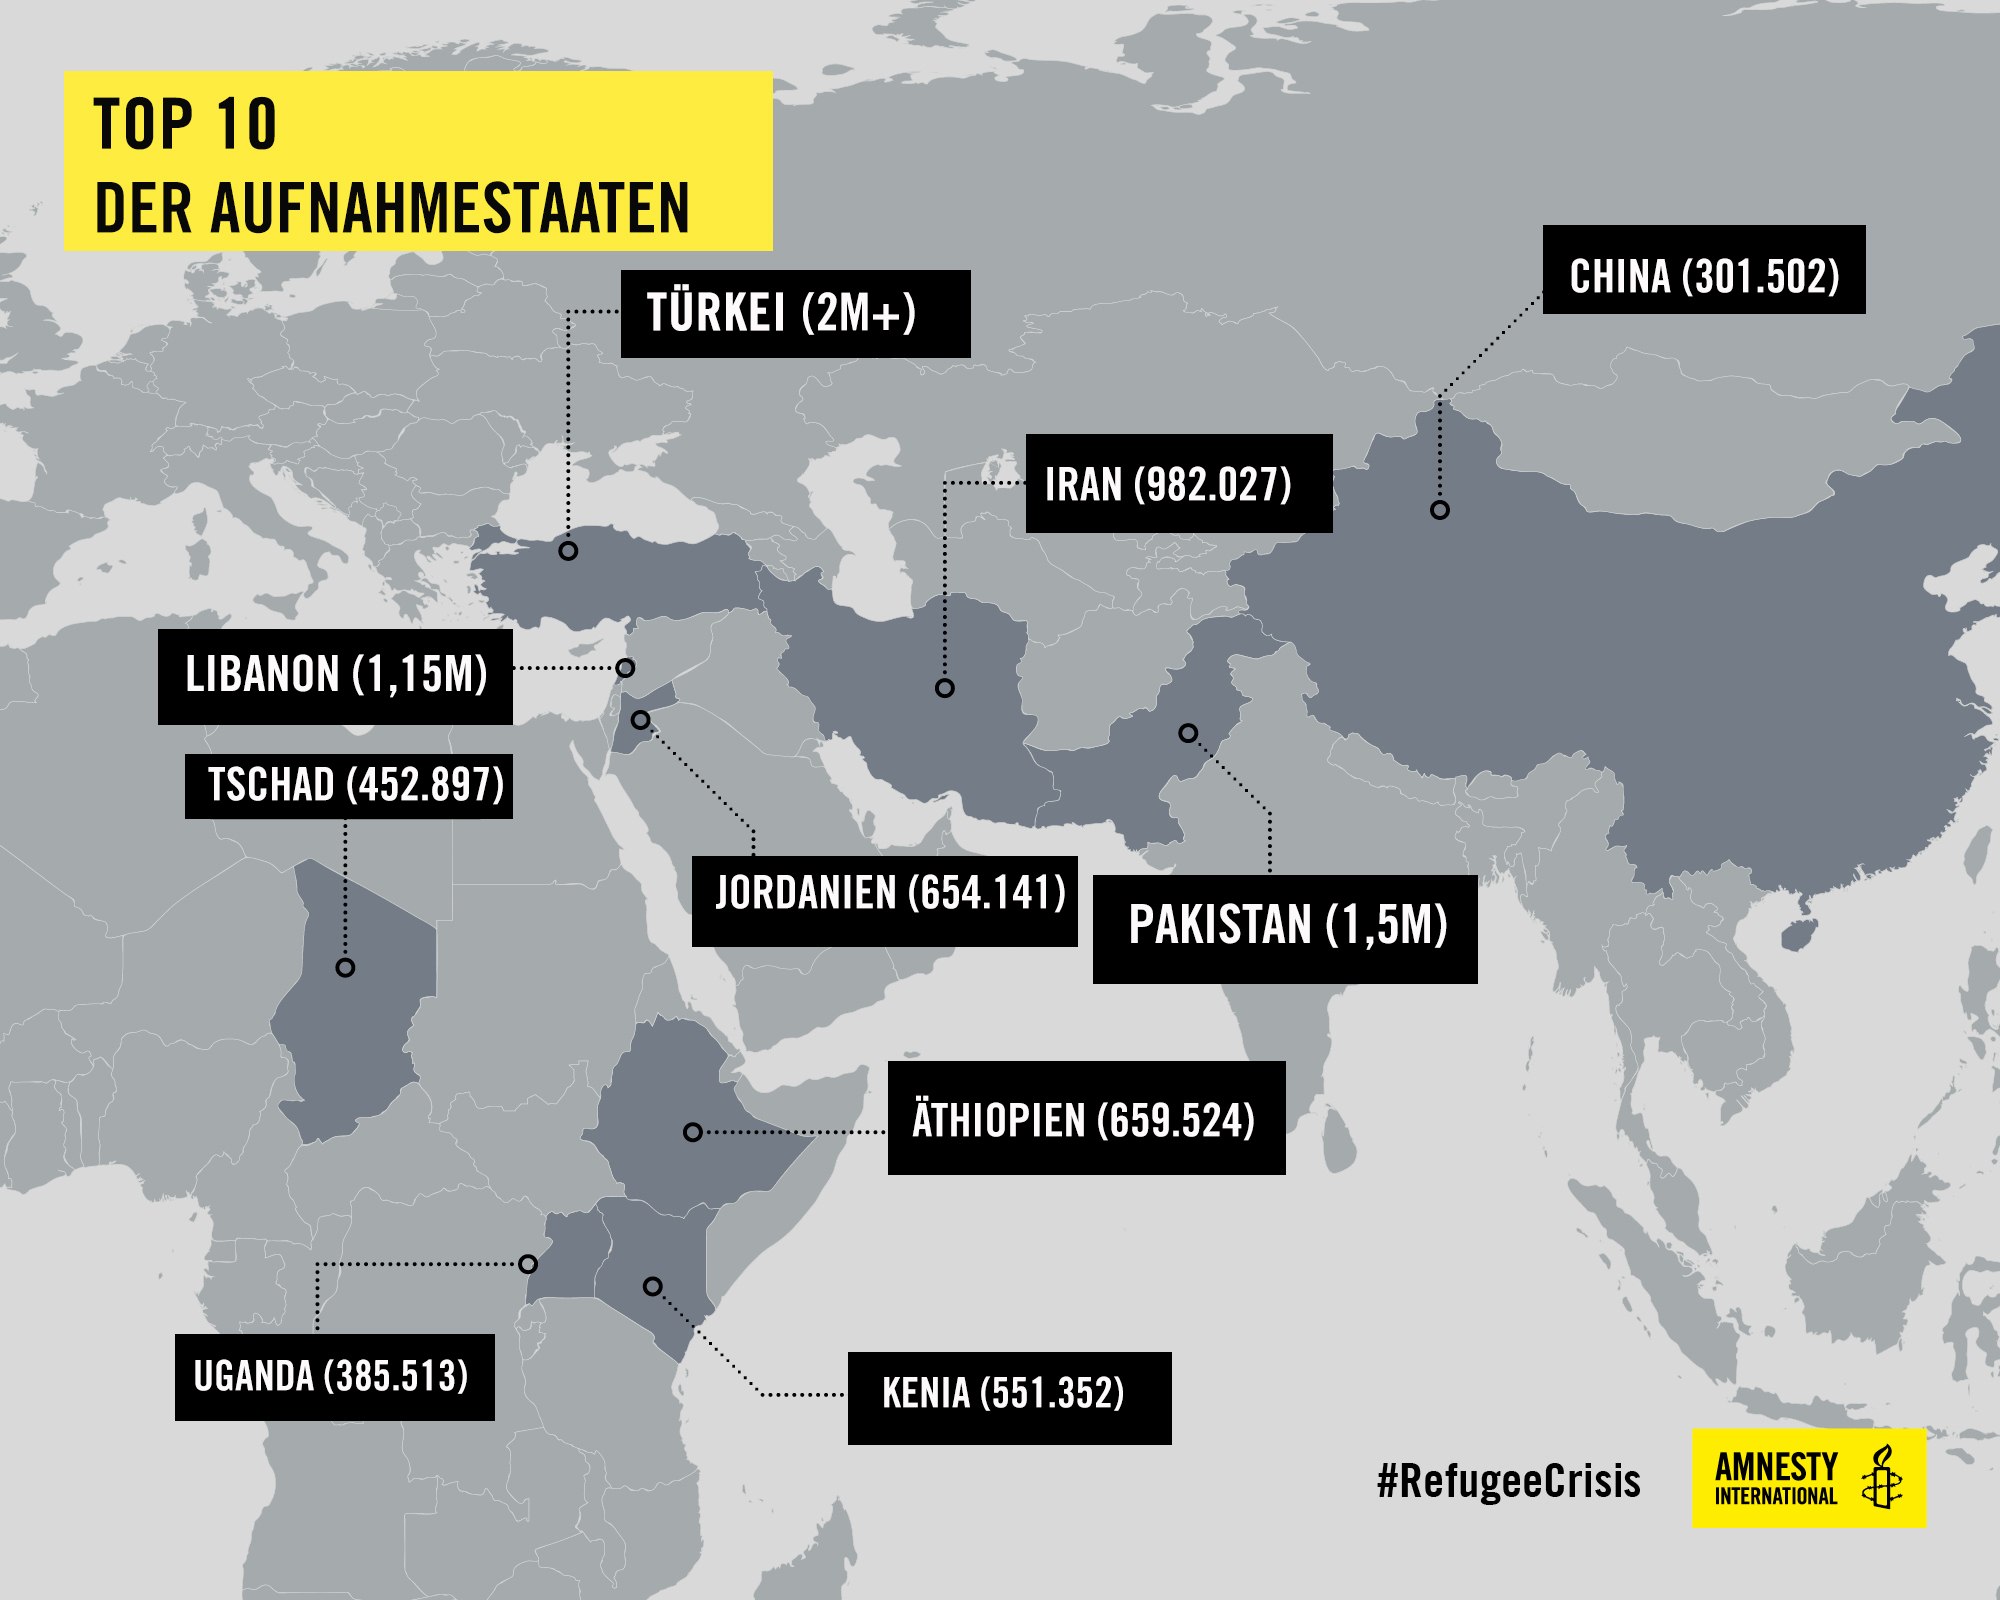 top10 refugeehostingcountries c AI | © Amnesty International